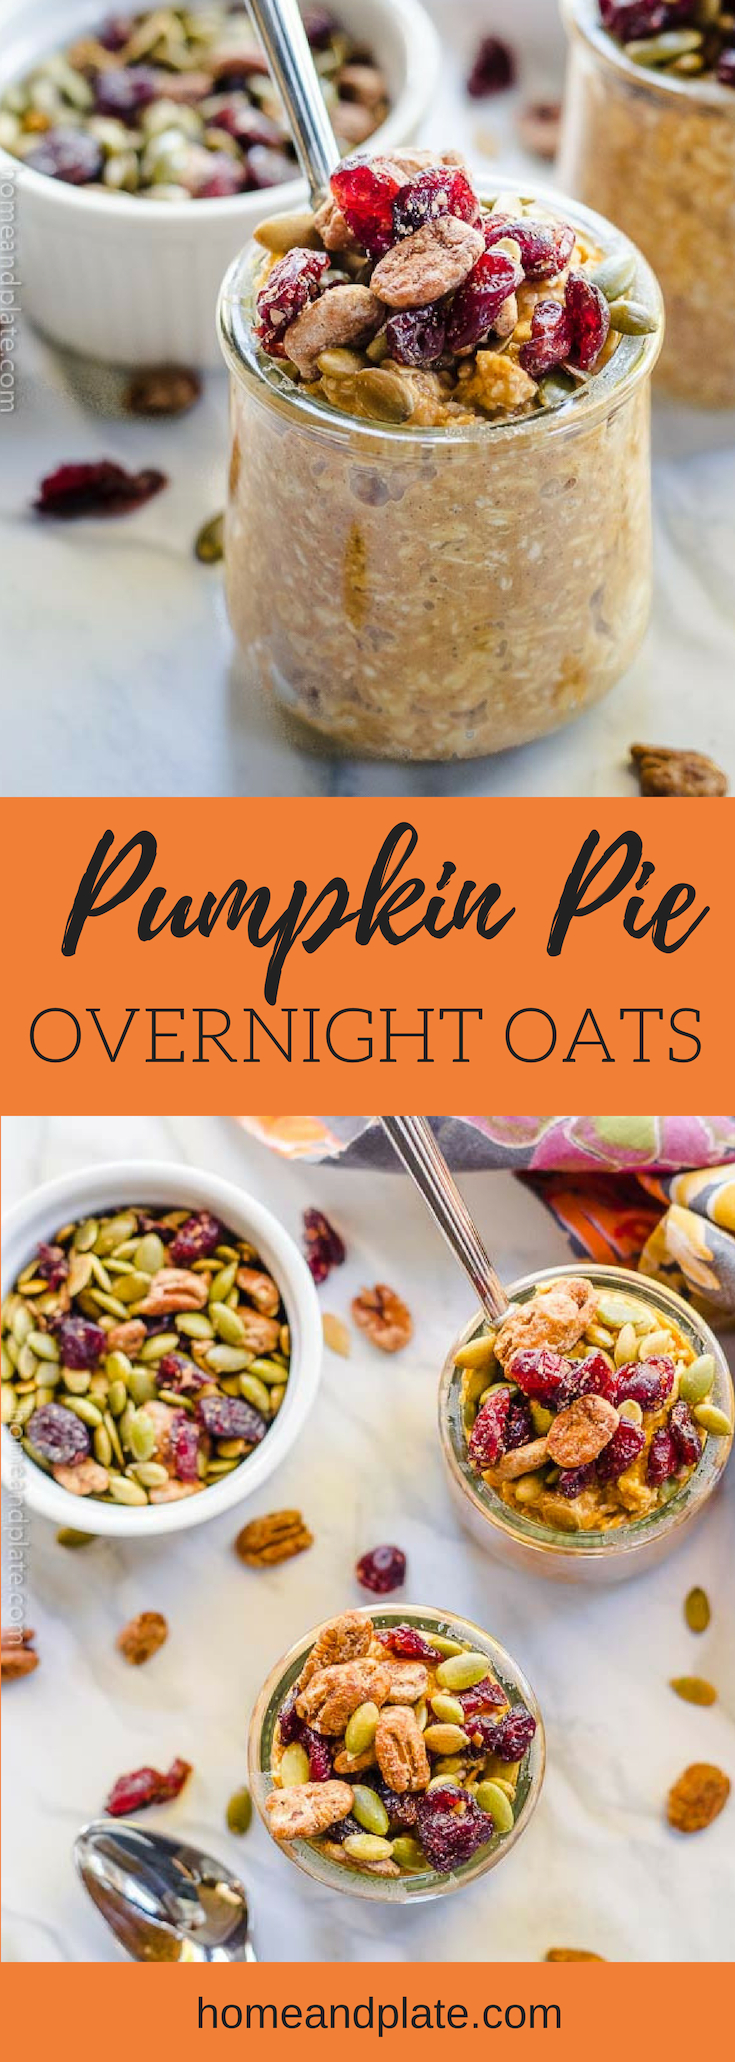 Pumpkin Pie Overnight Oats | Start your fall mornings with the taste of pumpkin pie with this easy make-ahead breakfast of overnight oats topped with dried cranberries, pepitas and pecans. #overnightoats #pumpkinovernightoats